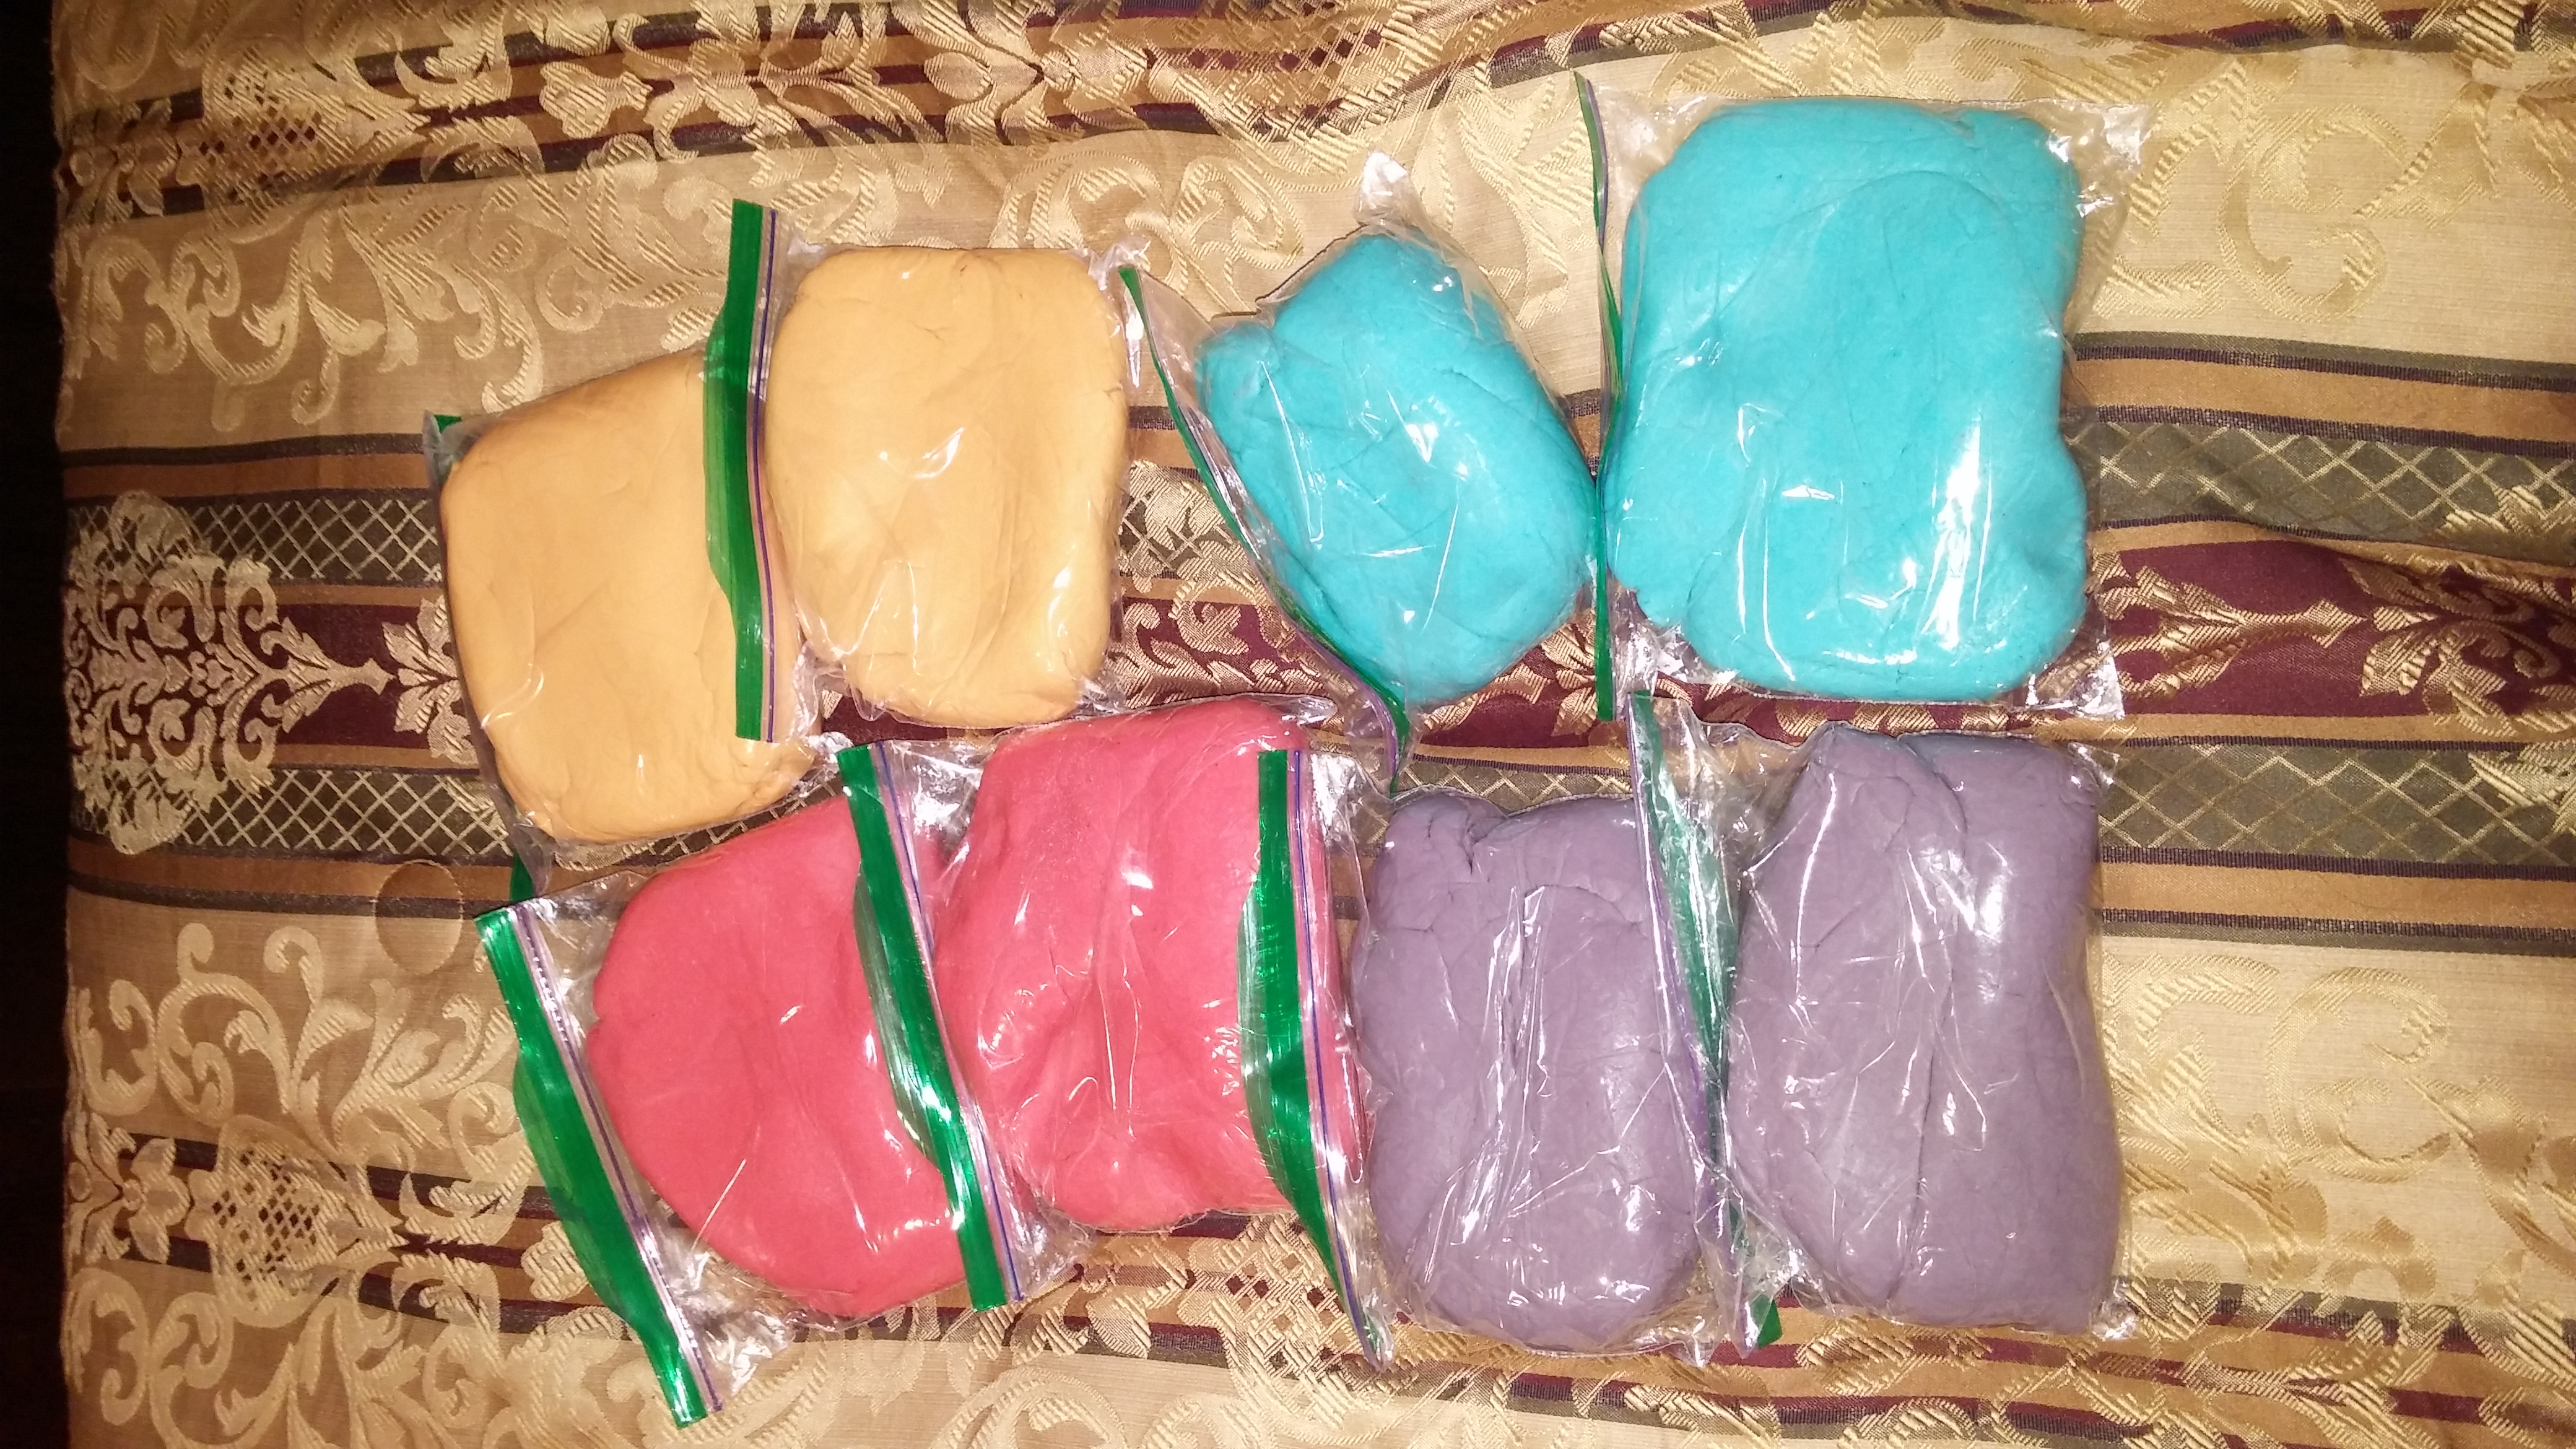 Colorful and Edible Play Dough Angel Baxter2015